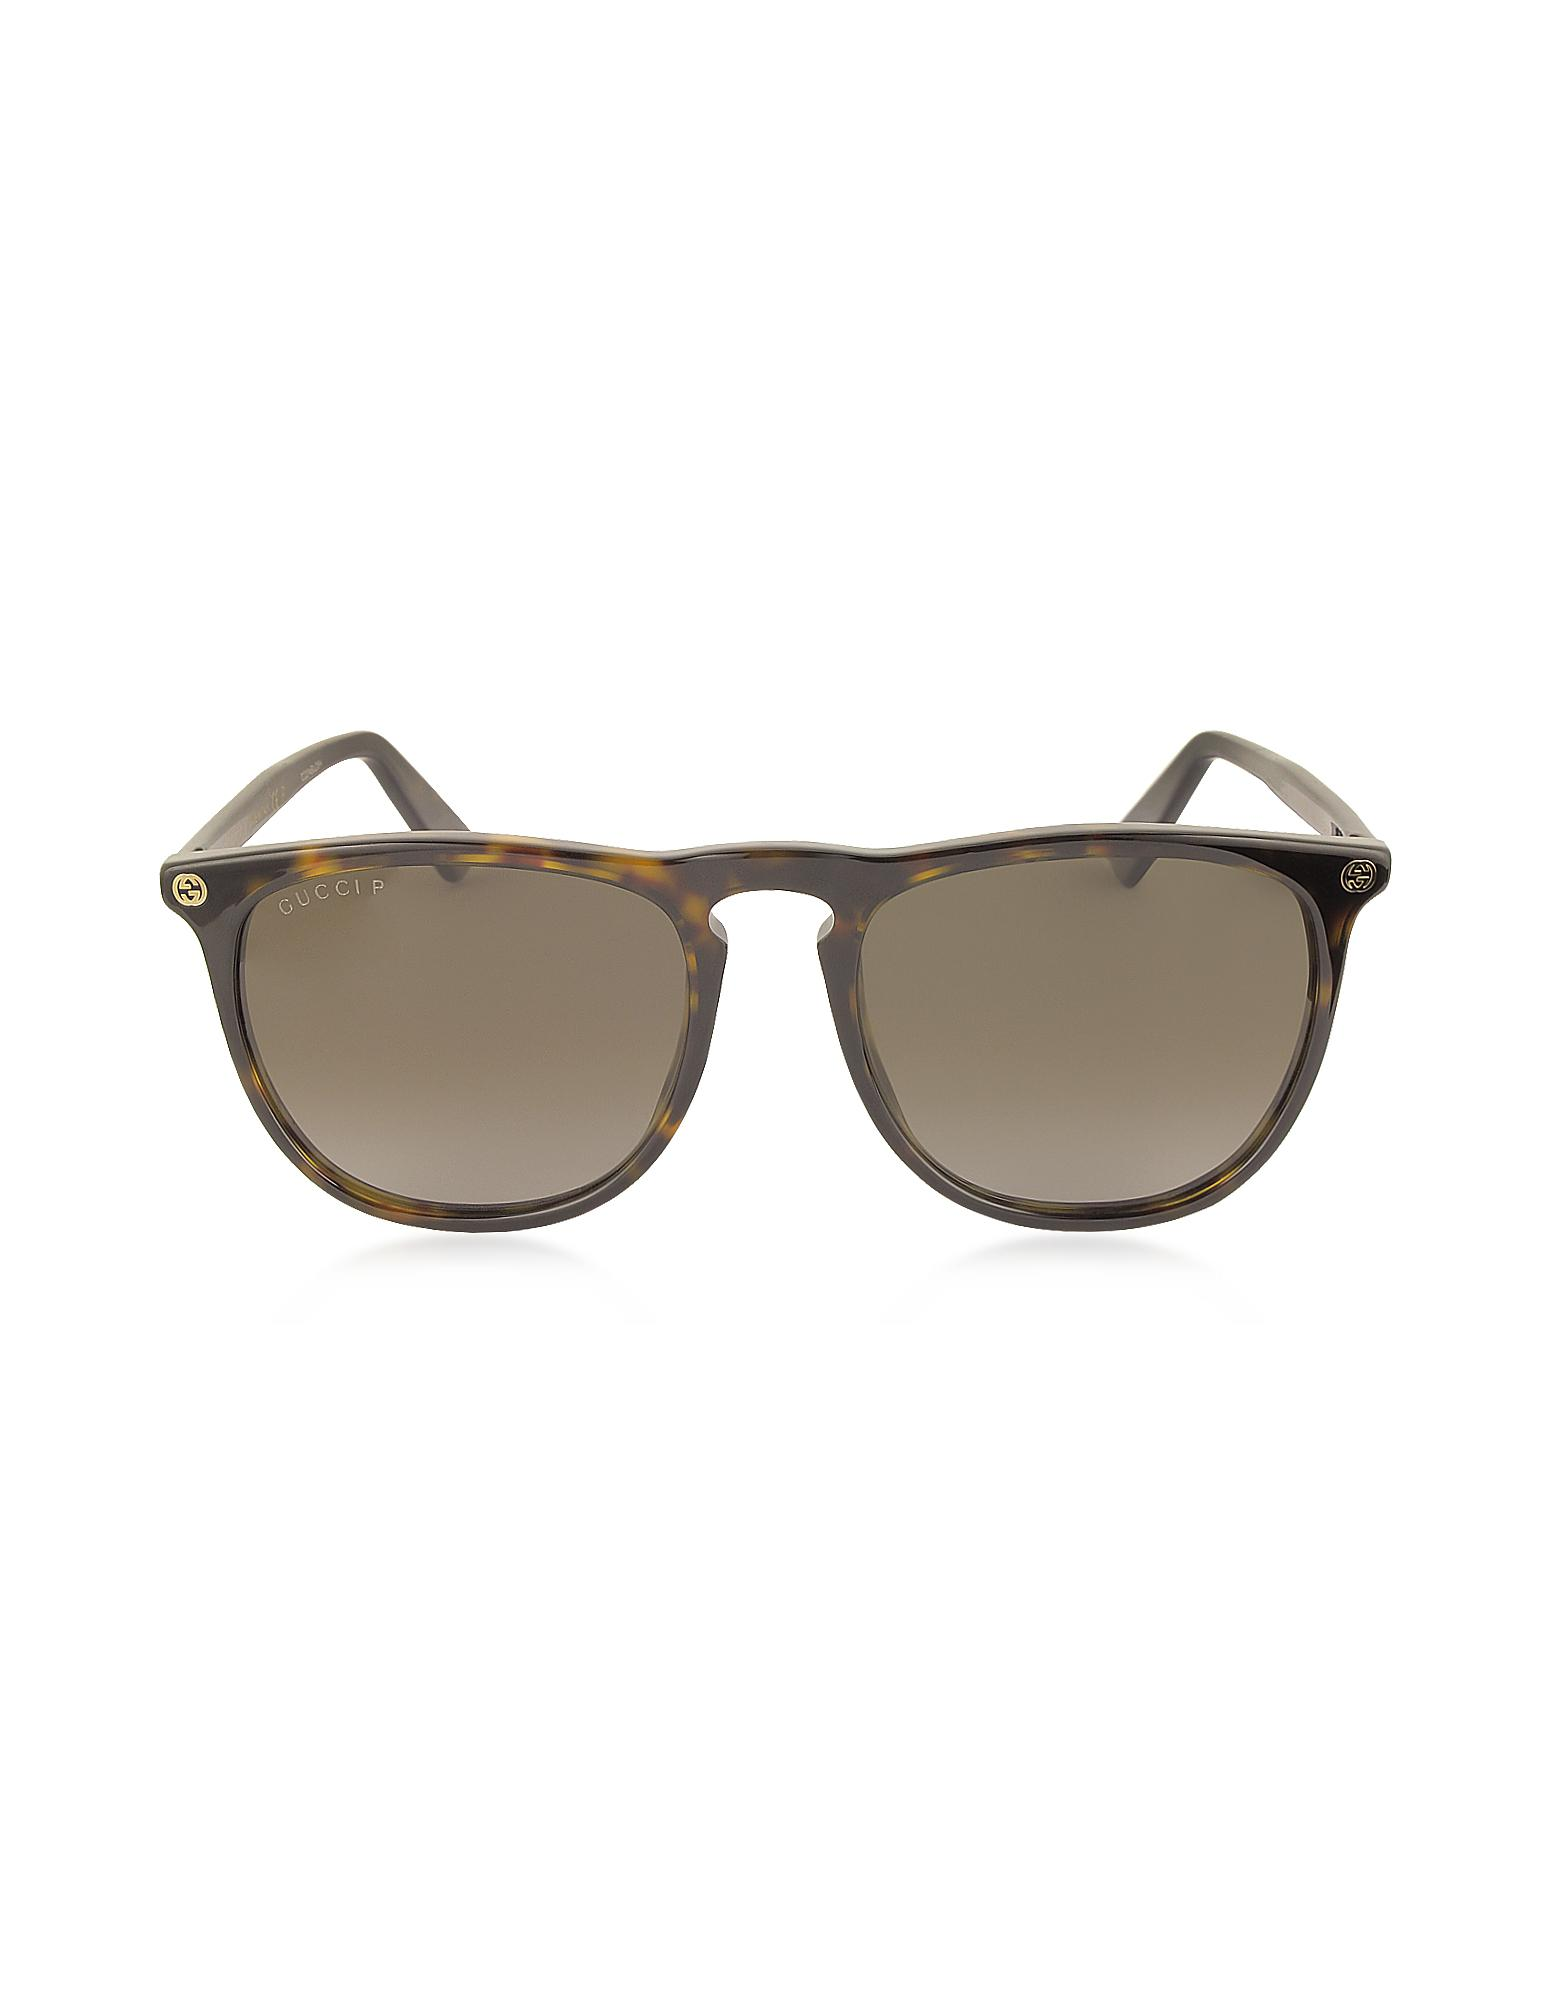 429be9bda552 Gucci GG0120S 006 Havana Acetate Rounded Square Men's Polarized ...